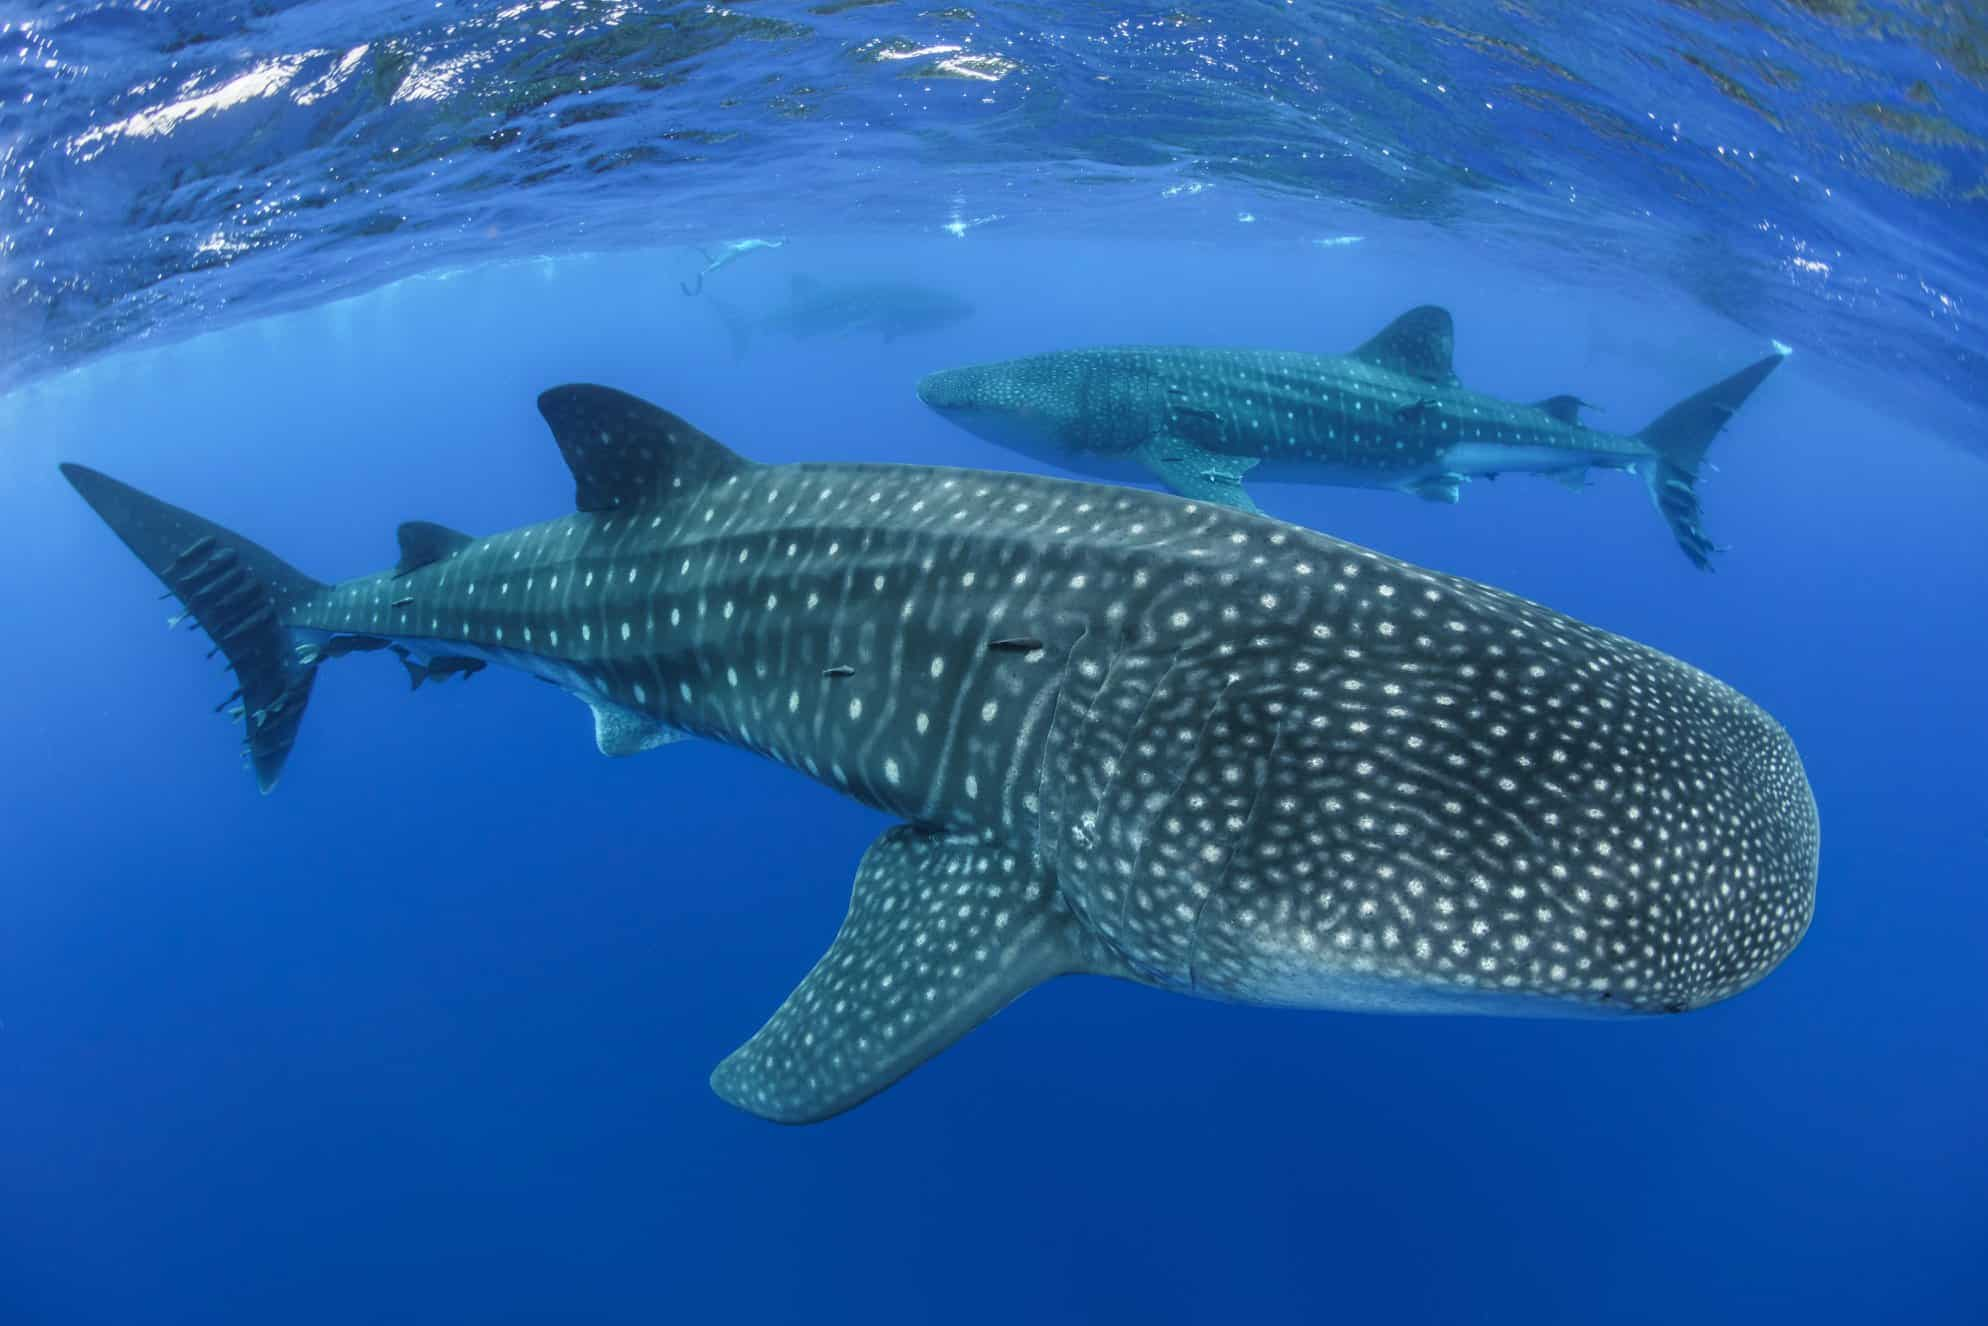 Whale sharks are annual visitors to St Helena. Research and conservation projects to understand more about their migratory routes and protect them are currently underway; Copyright: St Helena National Trust